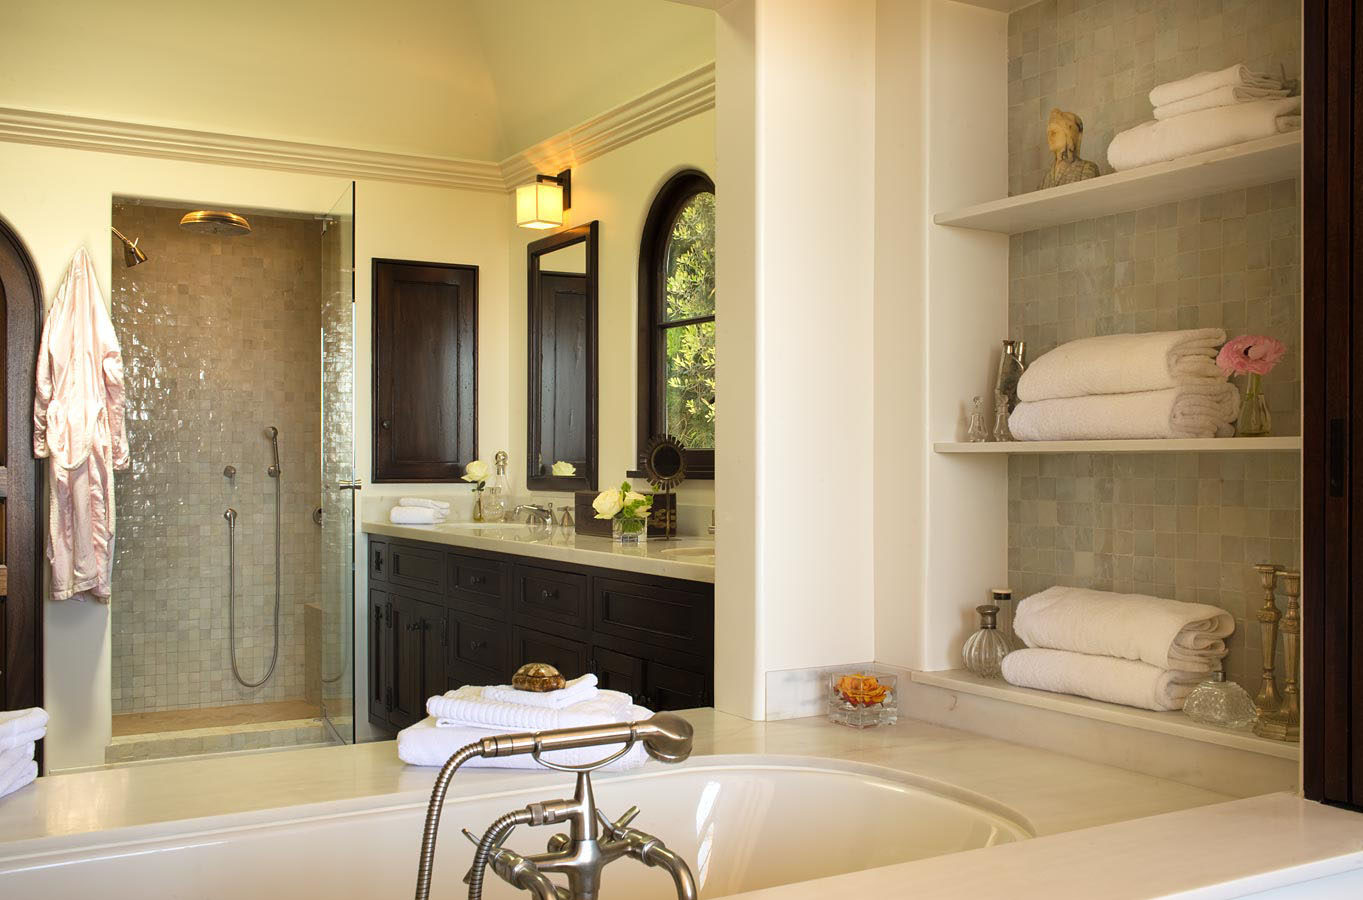 Spanish colonial beach house in santa monica idesignarch for Spanish style bathroom